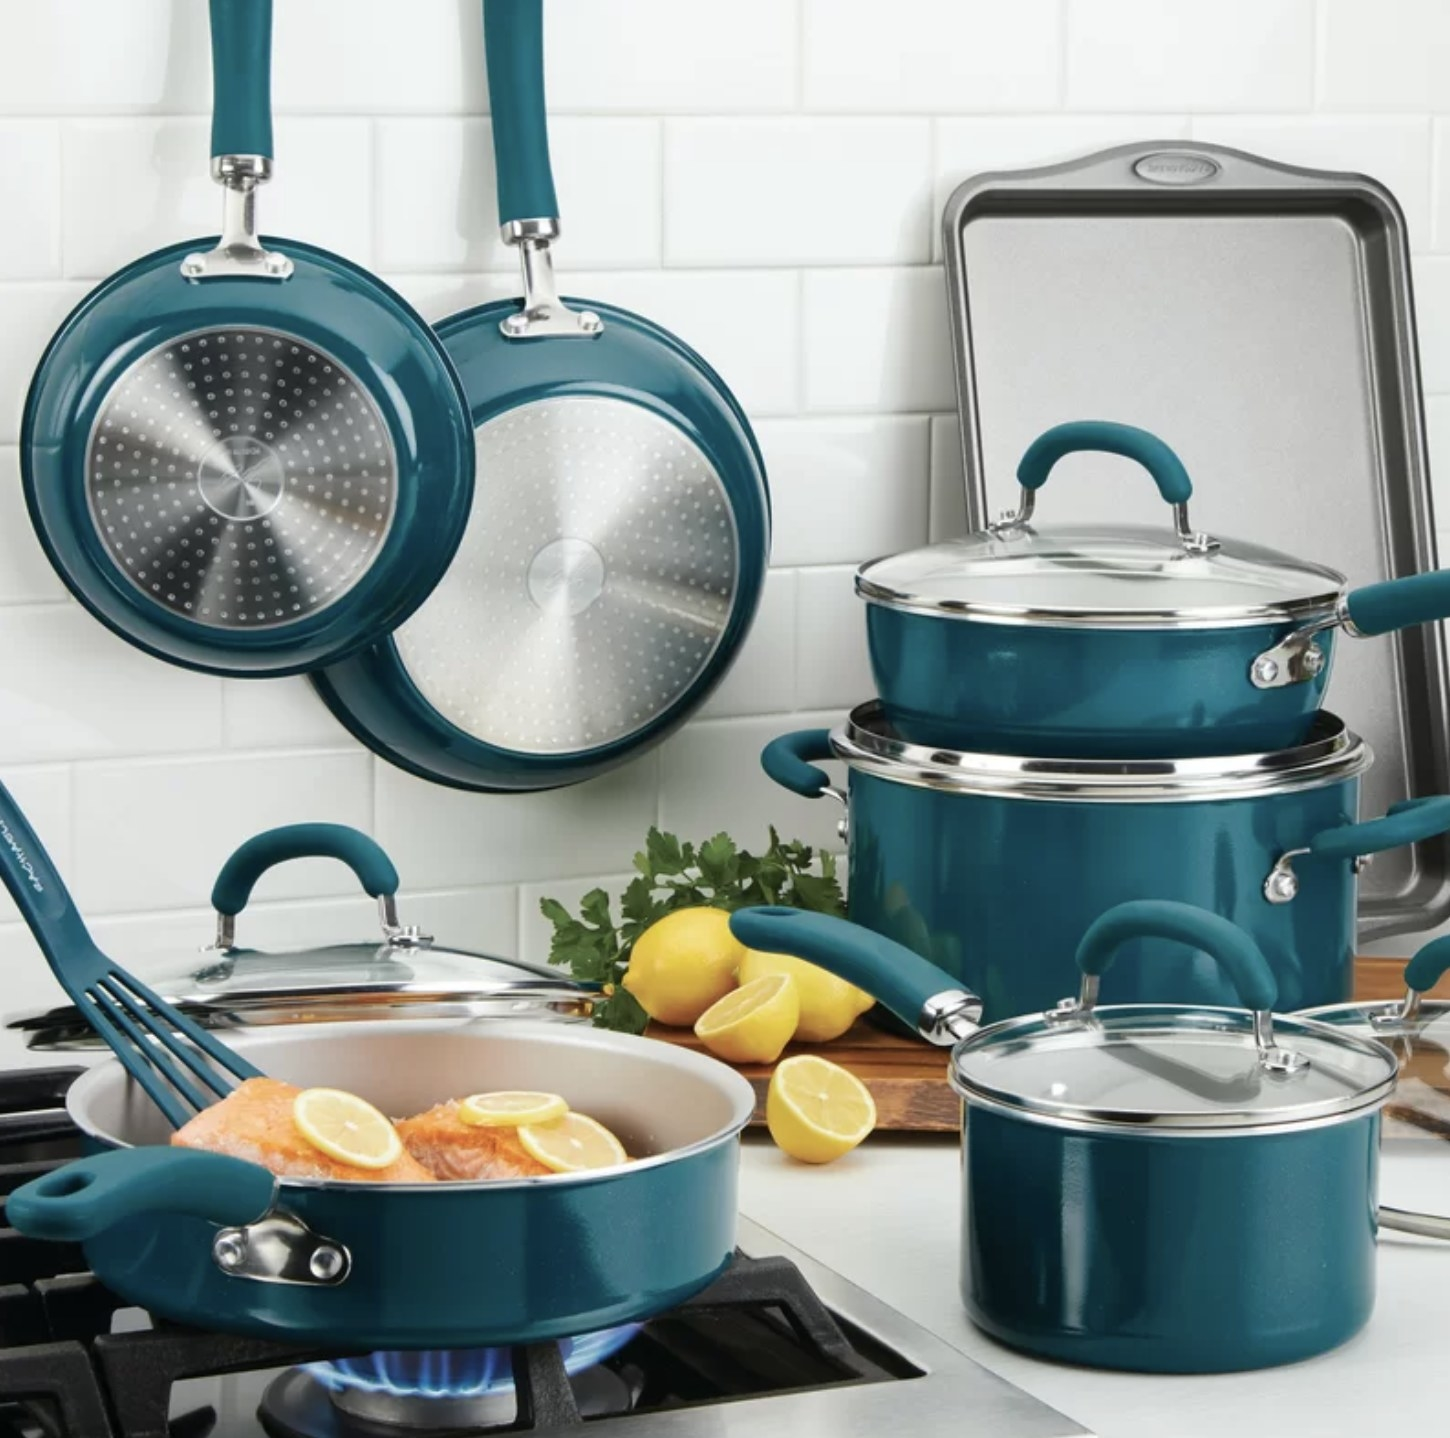 The cookware set on a dark teal color